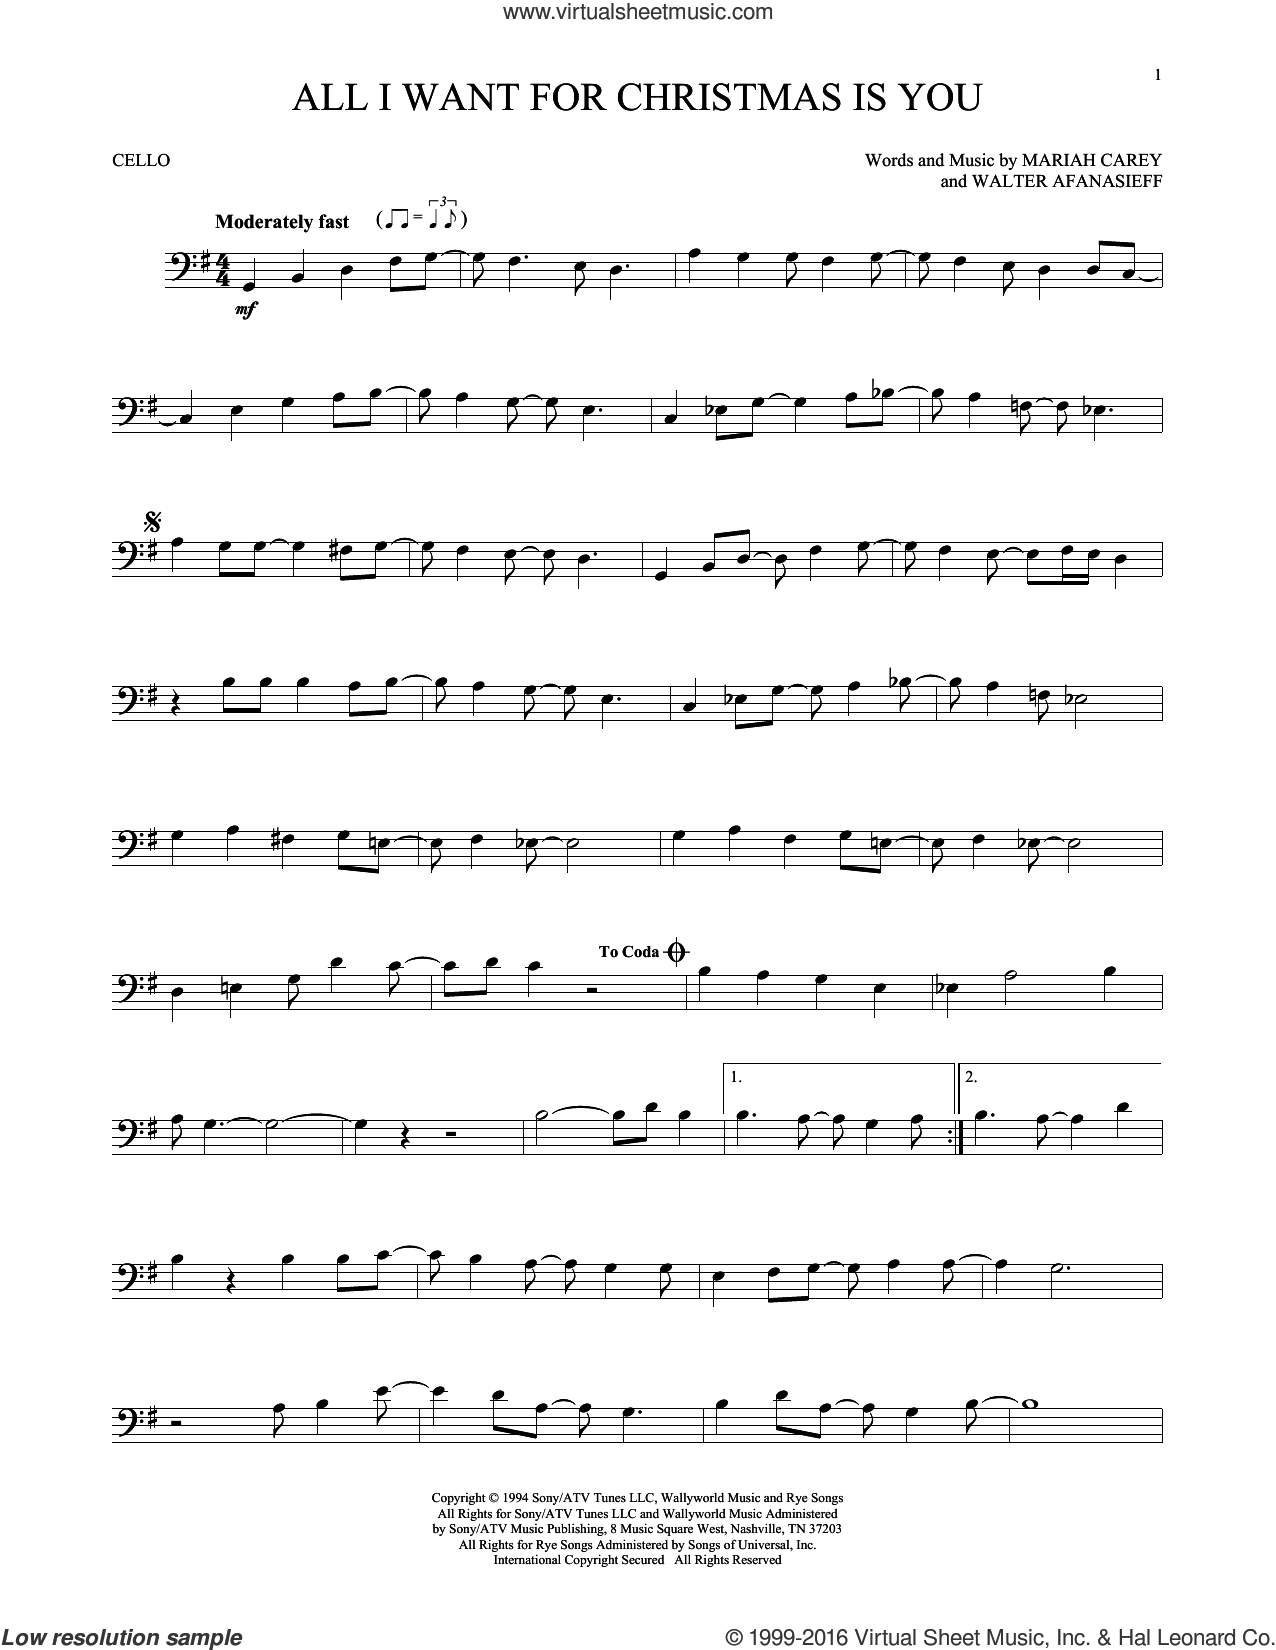 All I Want For Christmas Is You sheet music for cello solo by Mariah Carey and Walter Afanasieff, intermediate skill level